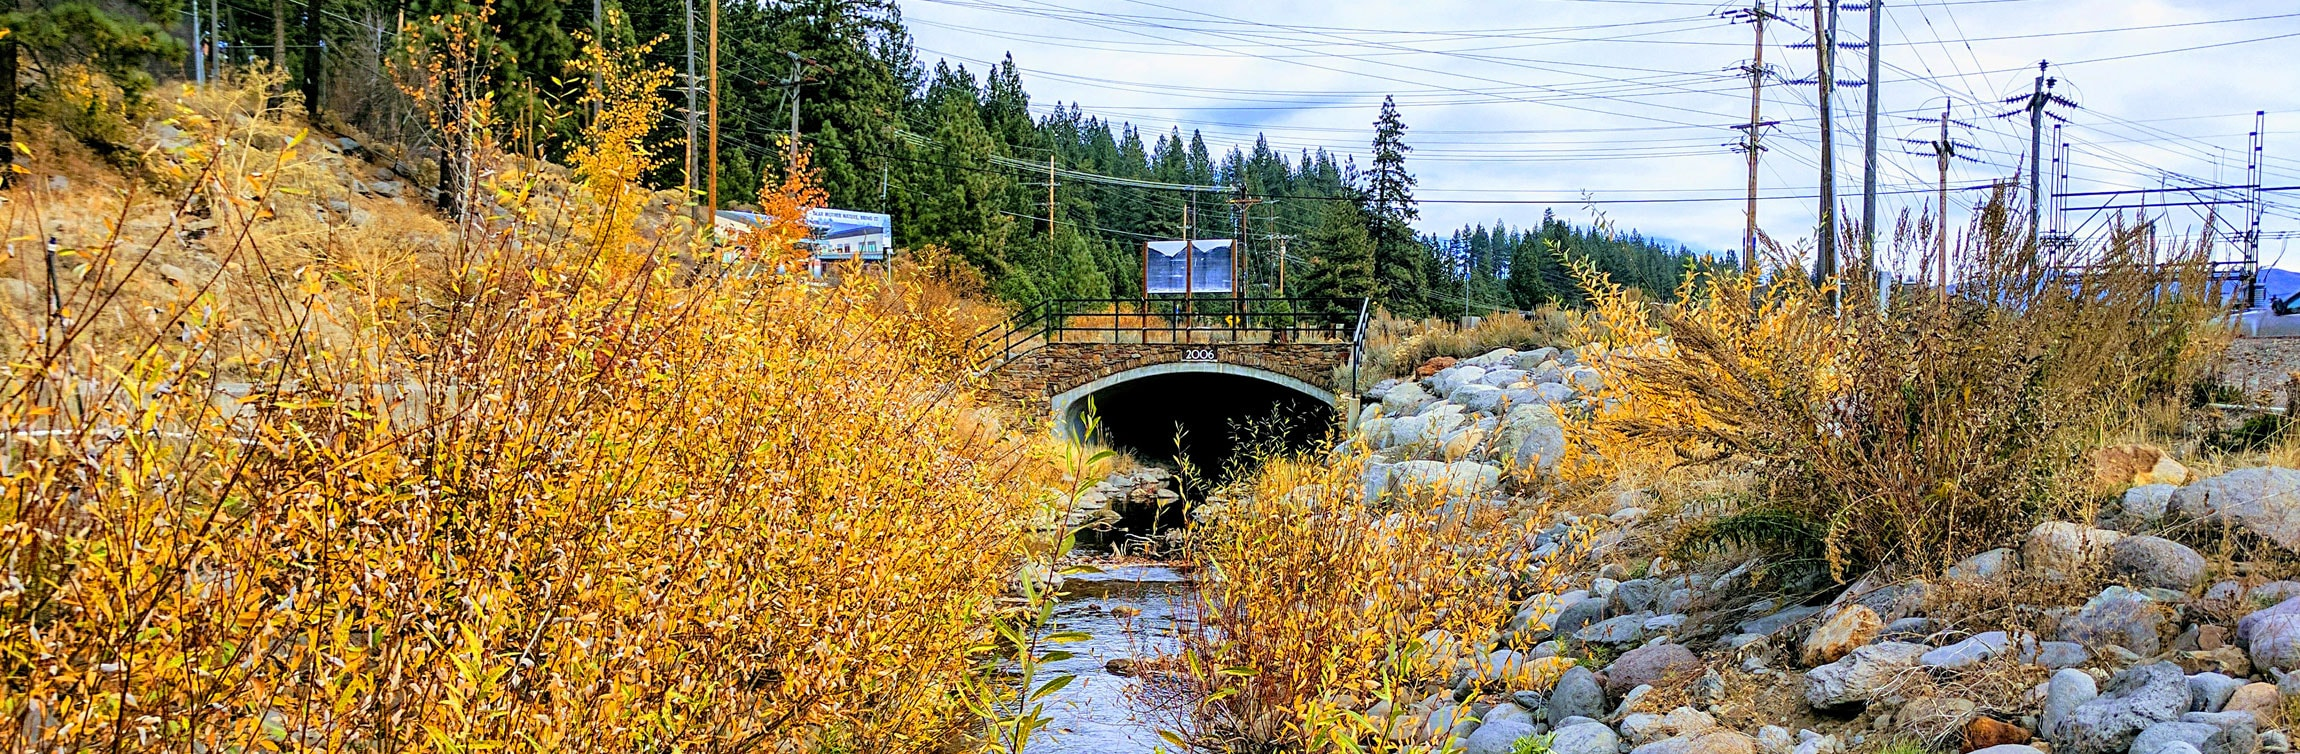 truckee_trout_creek_tahoe_restoration_record_of_topographic_survey_parcel_map_base_mapping_project_sage_land_surveying